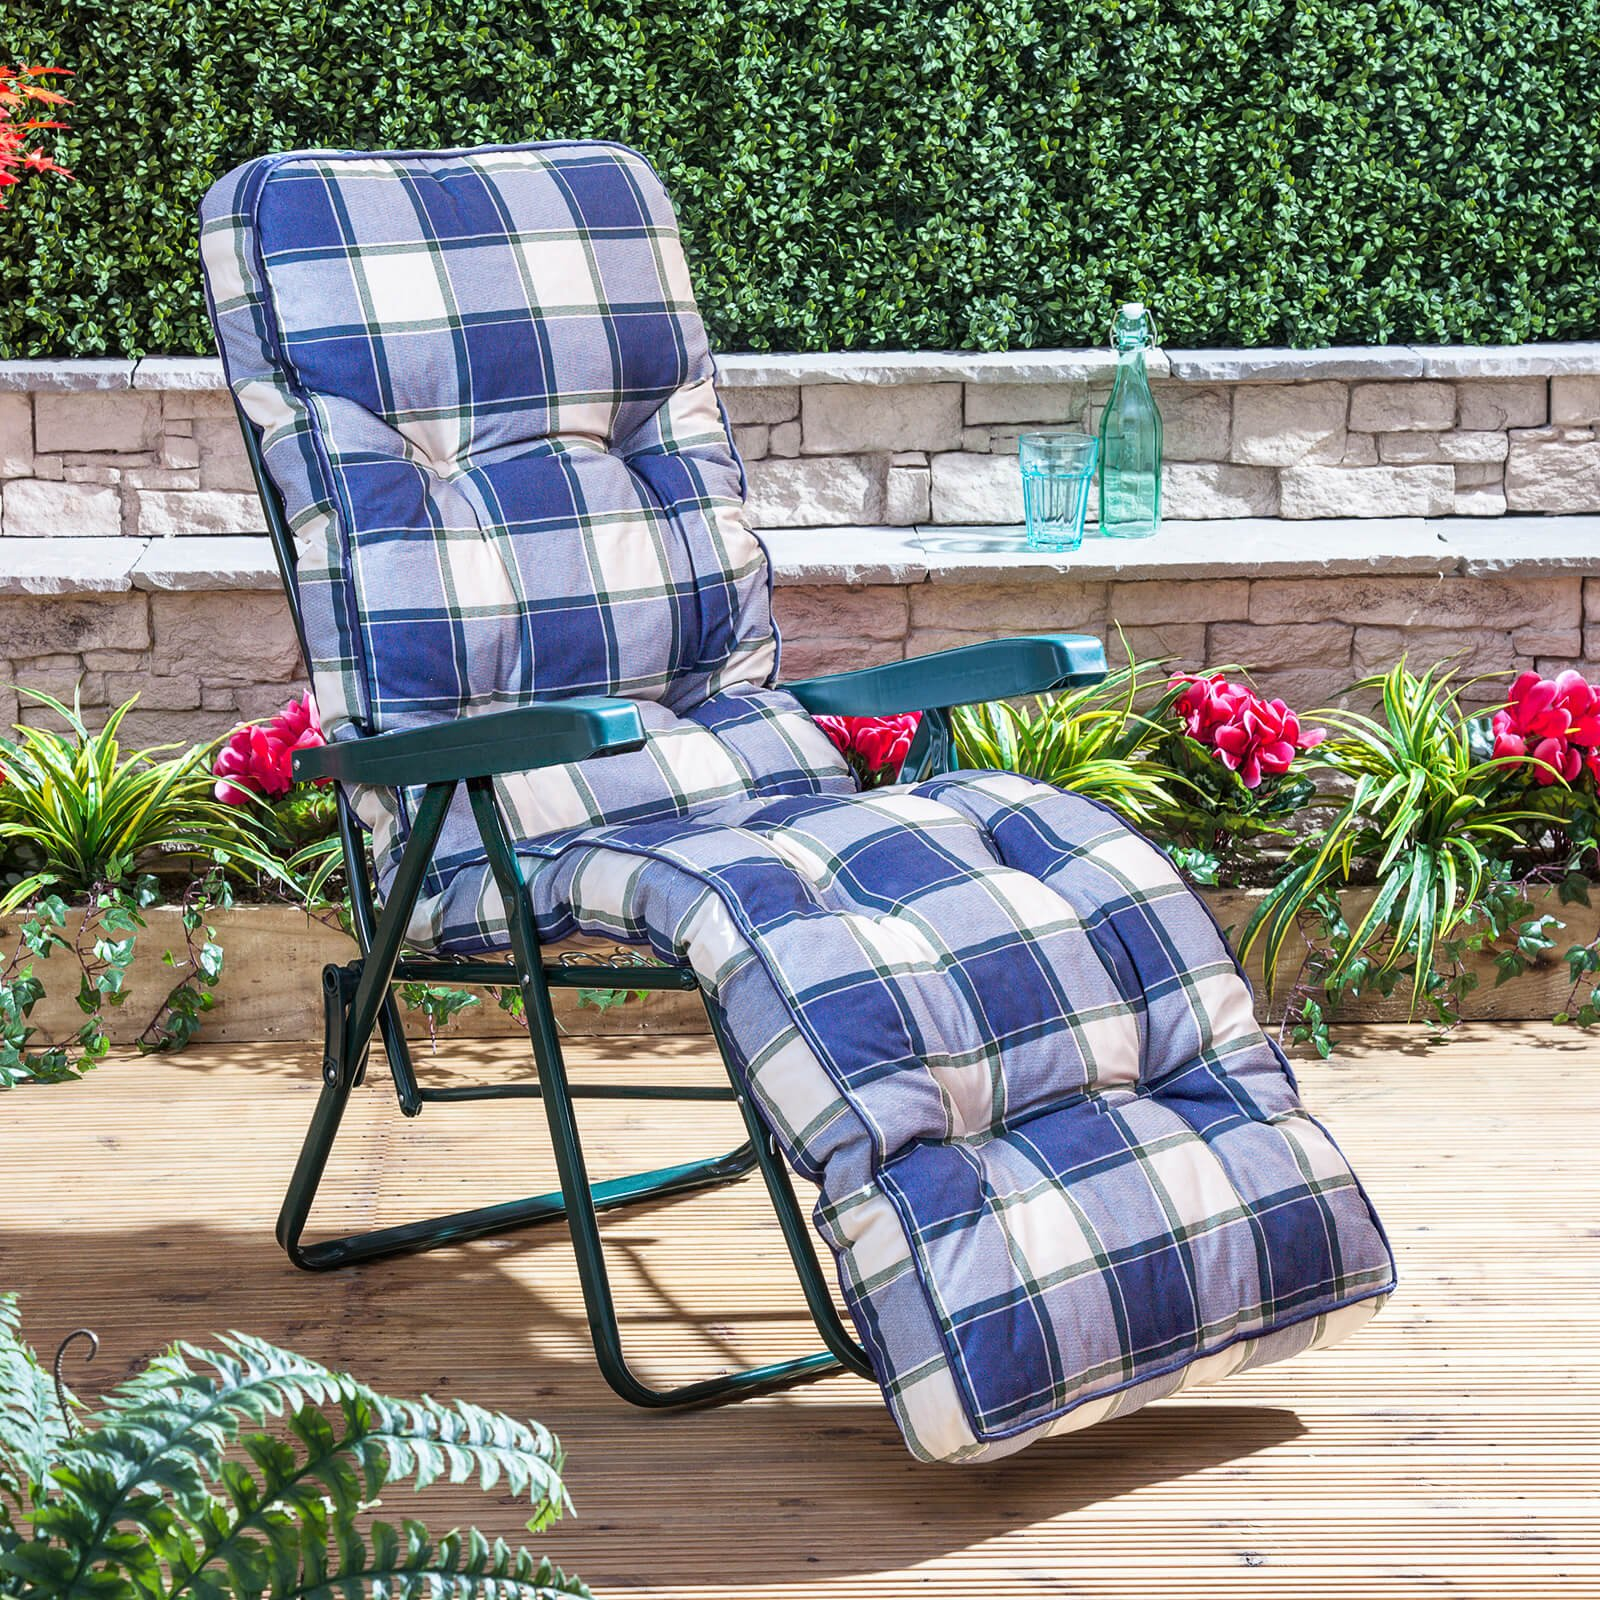 Alfresia Relaxer Chair Green Frame with Classic Blue Check Cushion